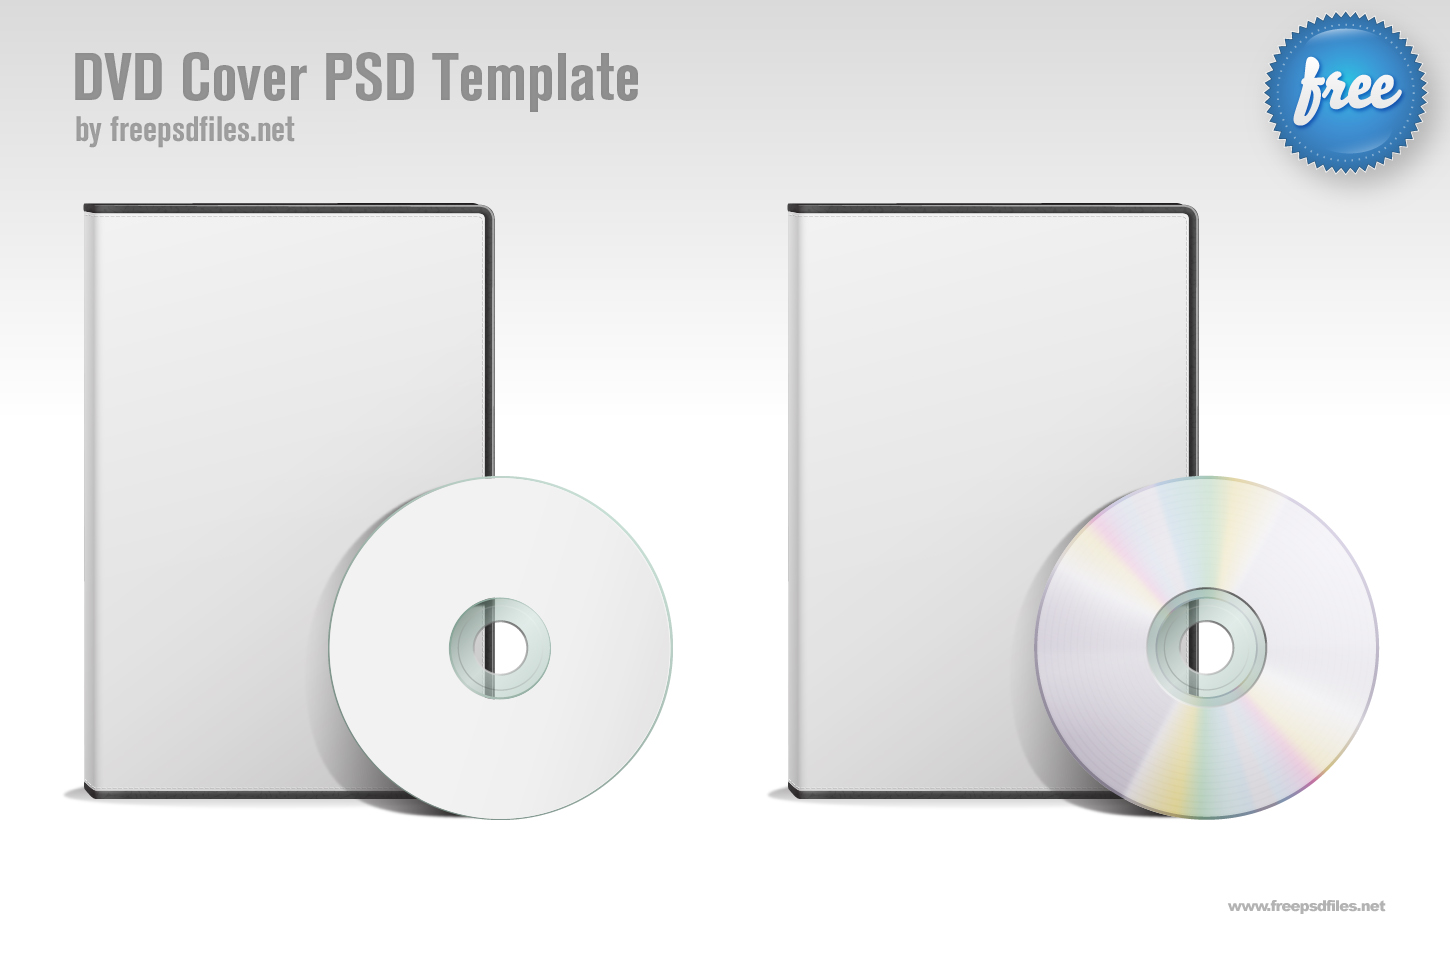 dvd menu templates after effects - dvd case mock up free psd template free templates